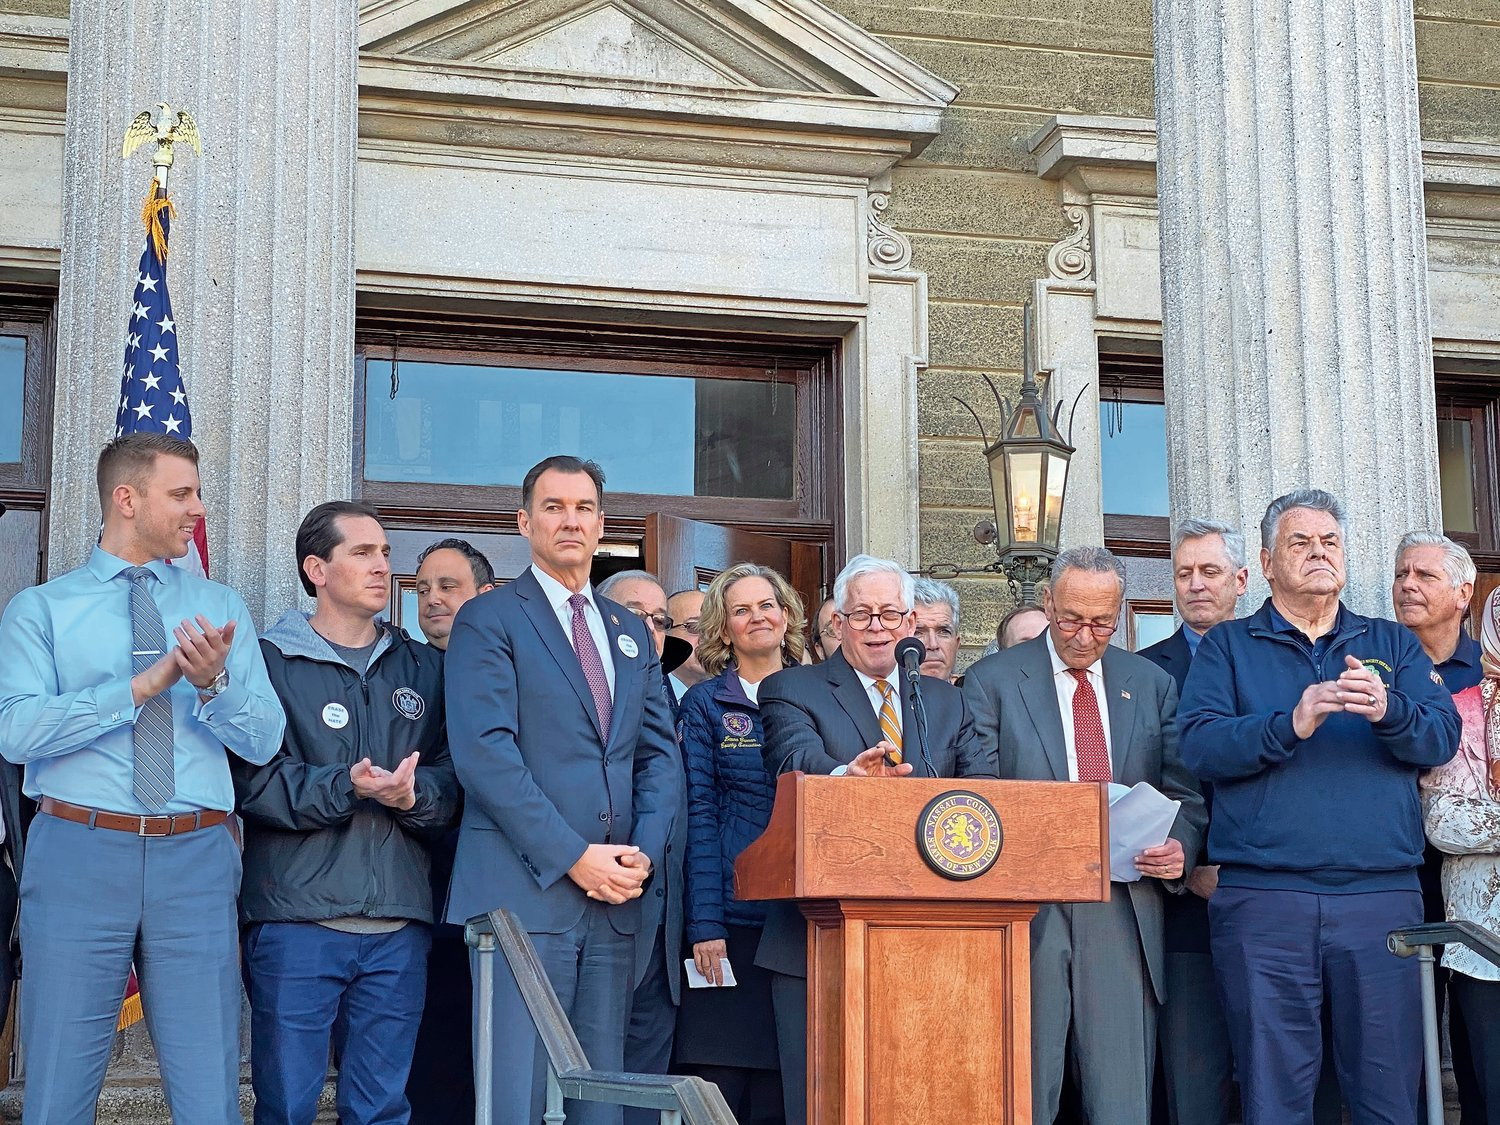 State Assemblyman Charles Lavine, at the lecturn, condemned anti-Semitism along with U.S. Rep. Tom Suozzi, left, County Executive Laura Curran and U.S. Senator Chuck Schumer at a march against hate.